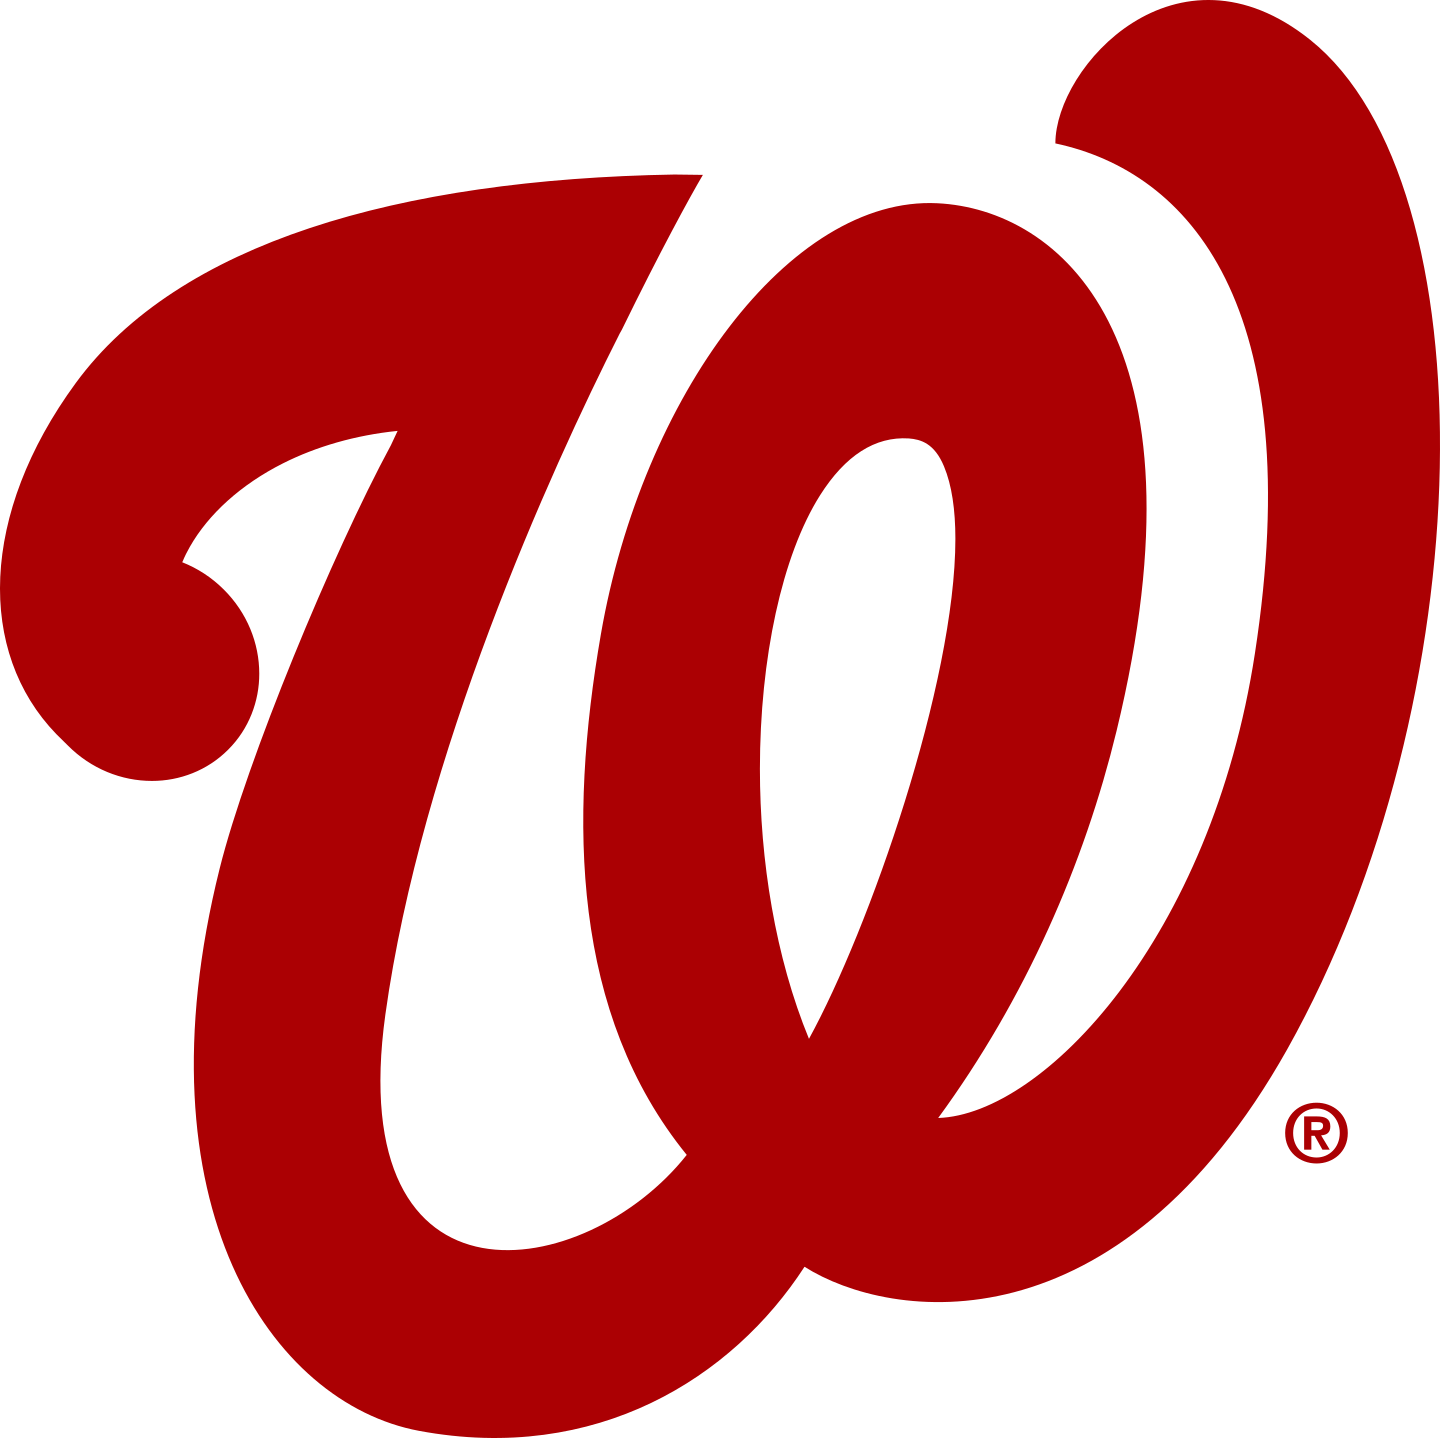 washington nationals logo 2 - Washington Nationals Logo